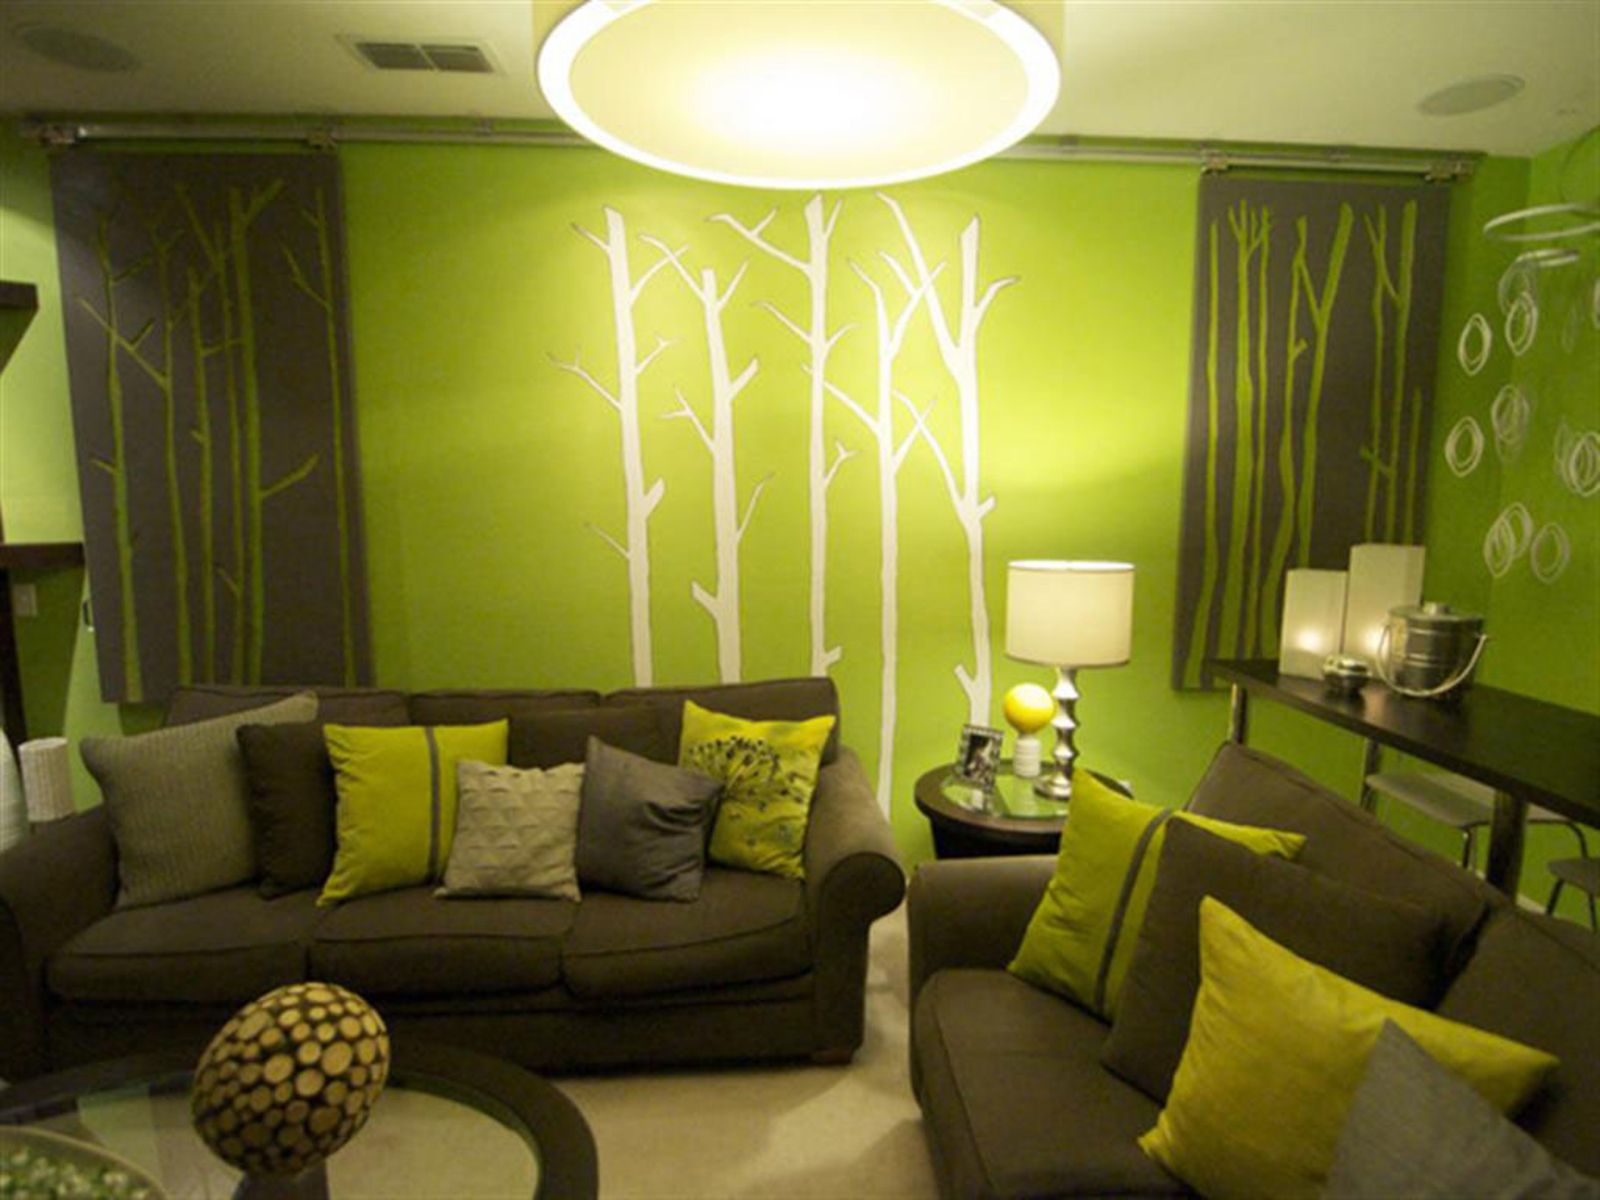 Beautiful Green Wall Decors With White Trees Decals And Green Sofas ...